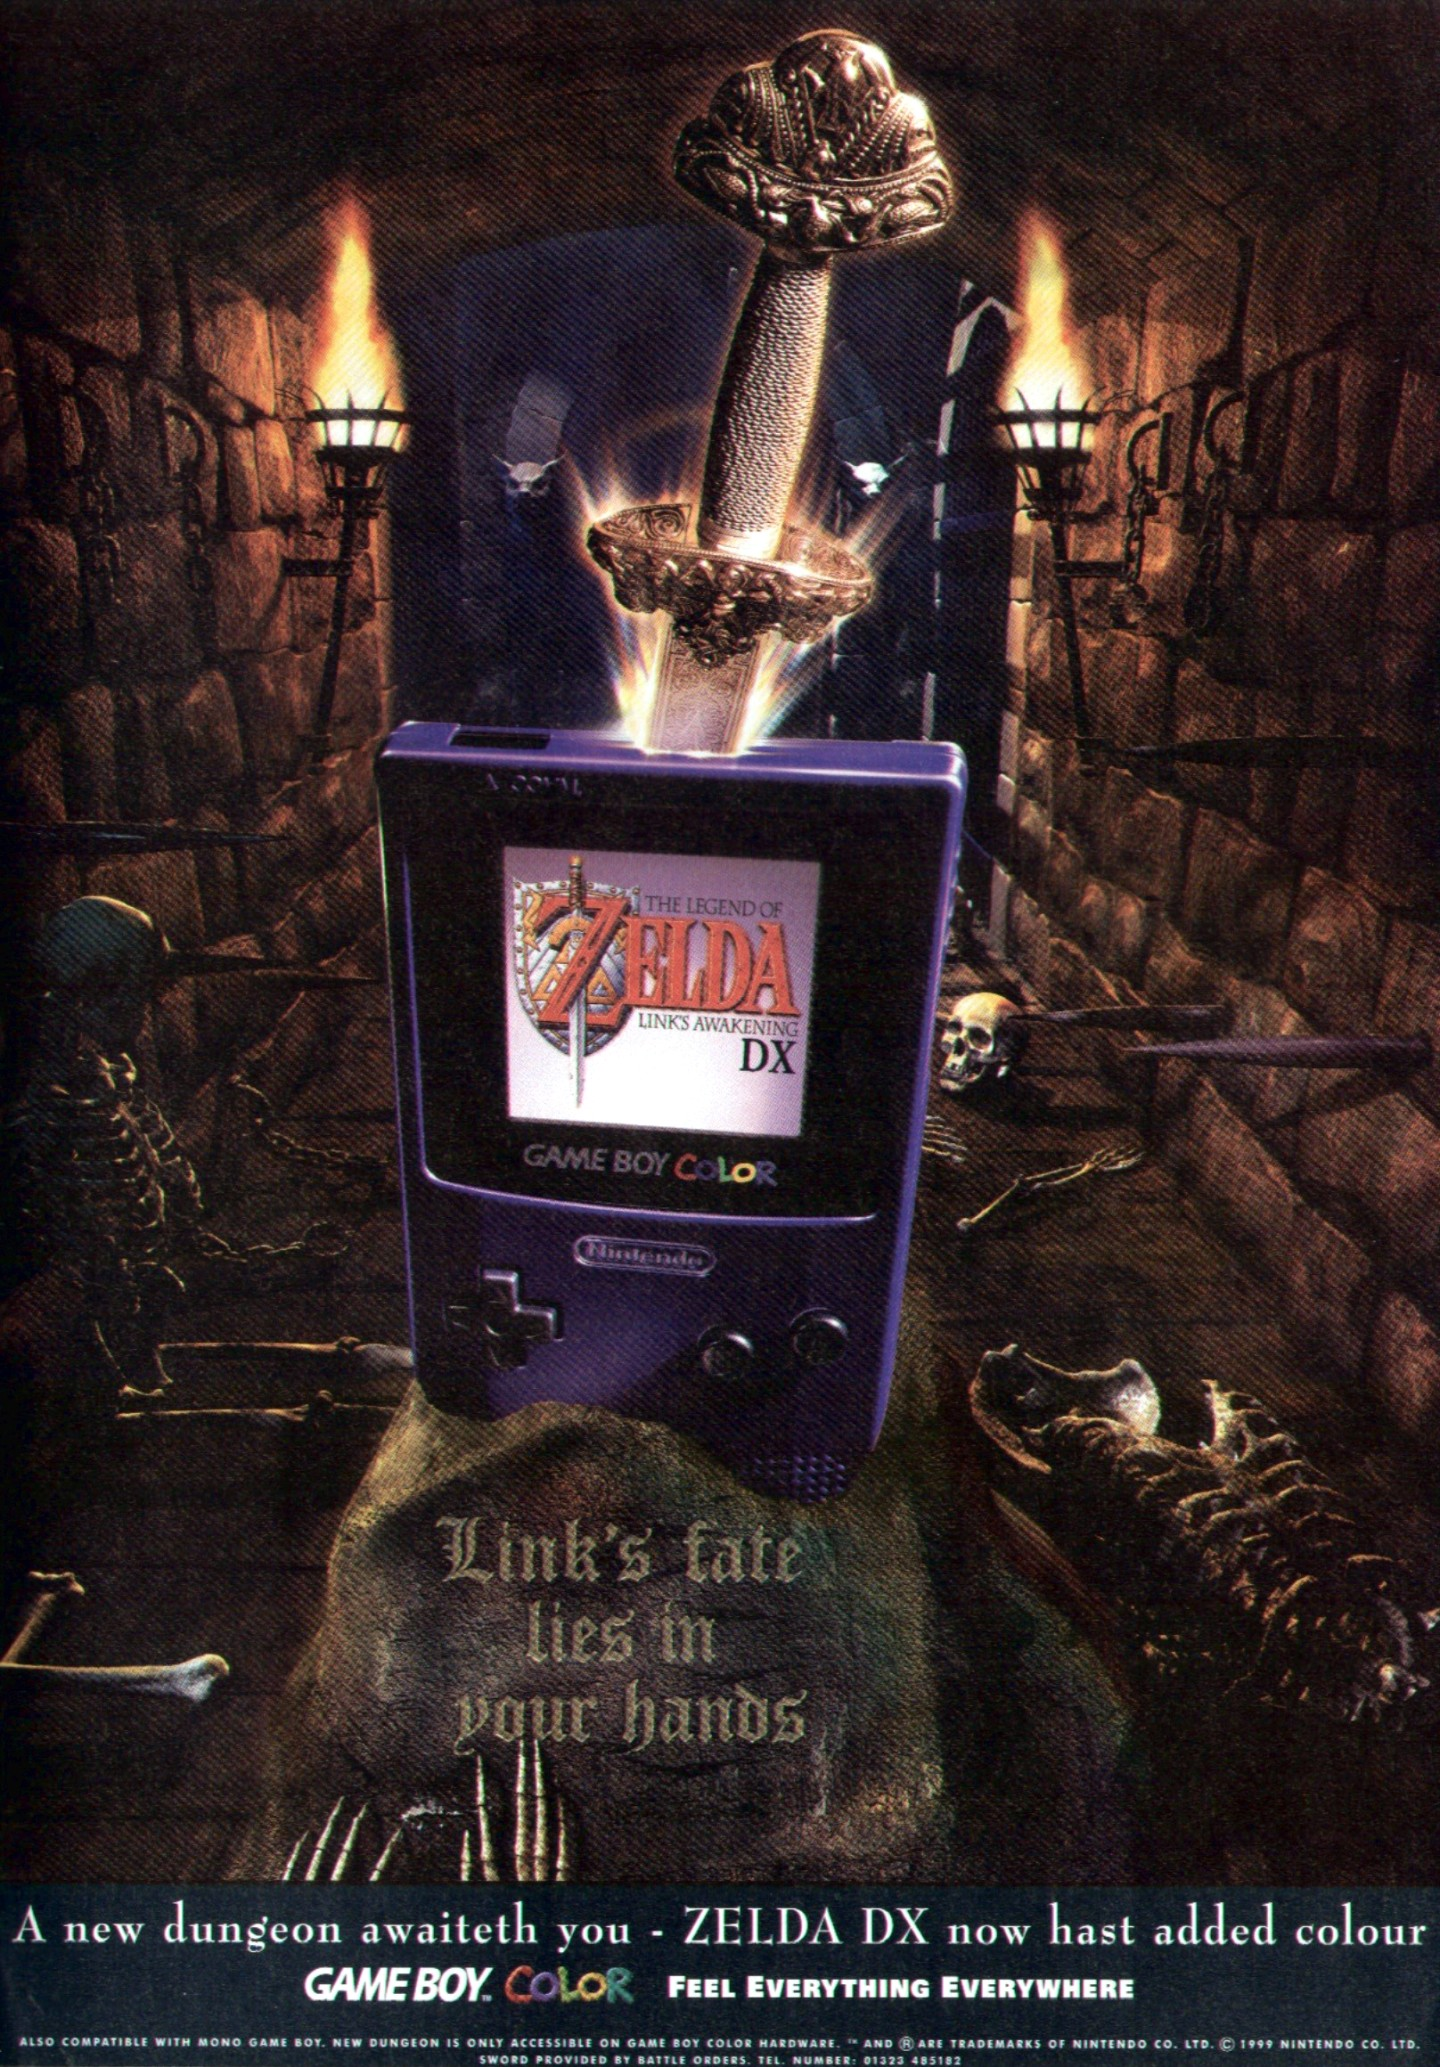 Gameboy color ad - The